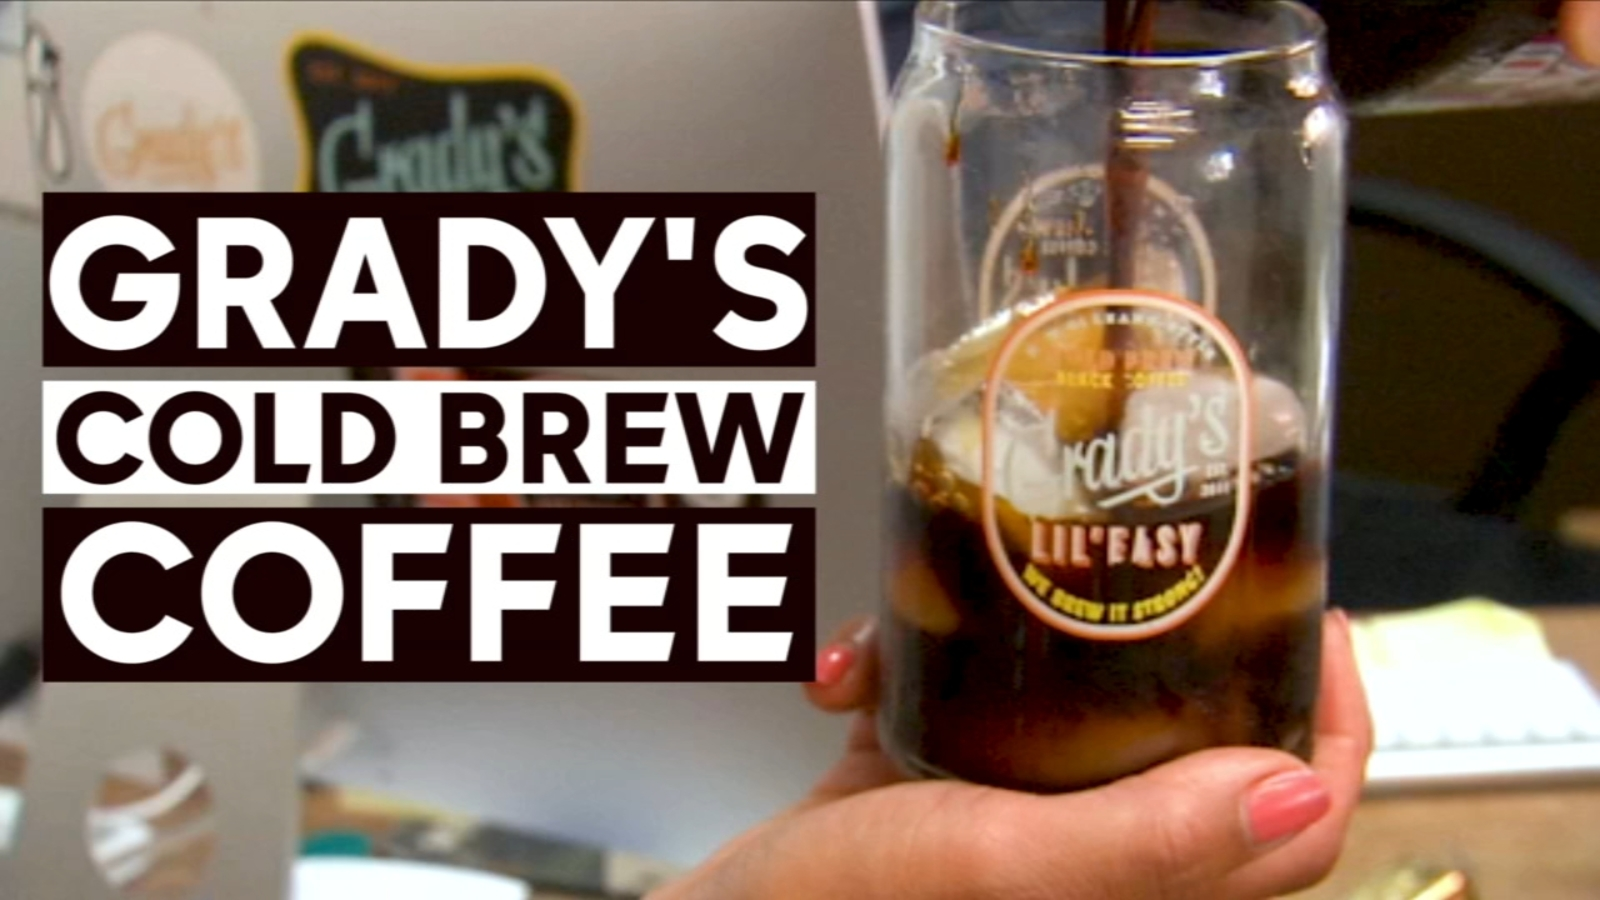 Grady's Cold Brew in the Bronx makes cold brew affordable for coffee lovers